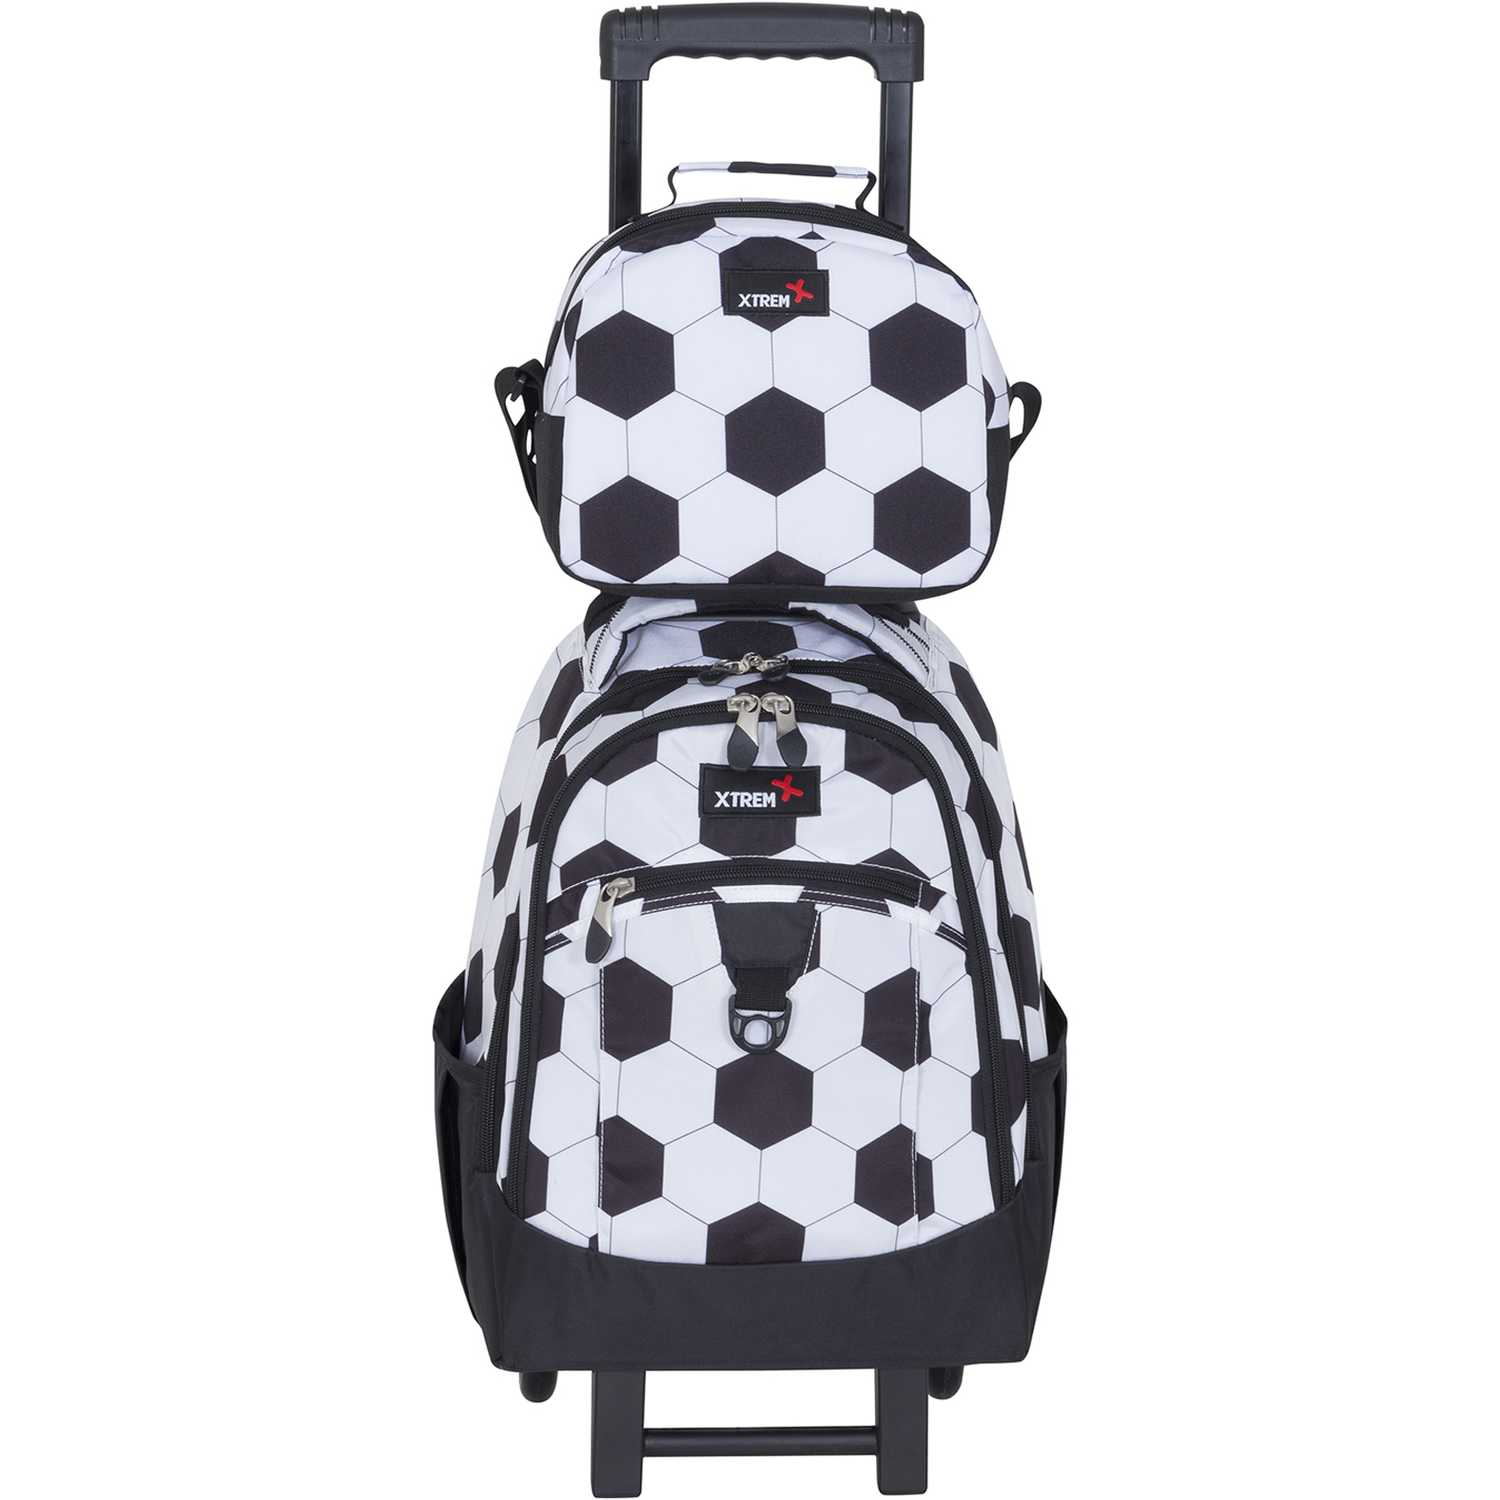 Mochila de Niño Xtrem Blanco / negro backpack with wheels goal run 731